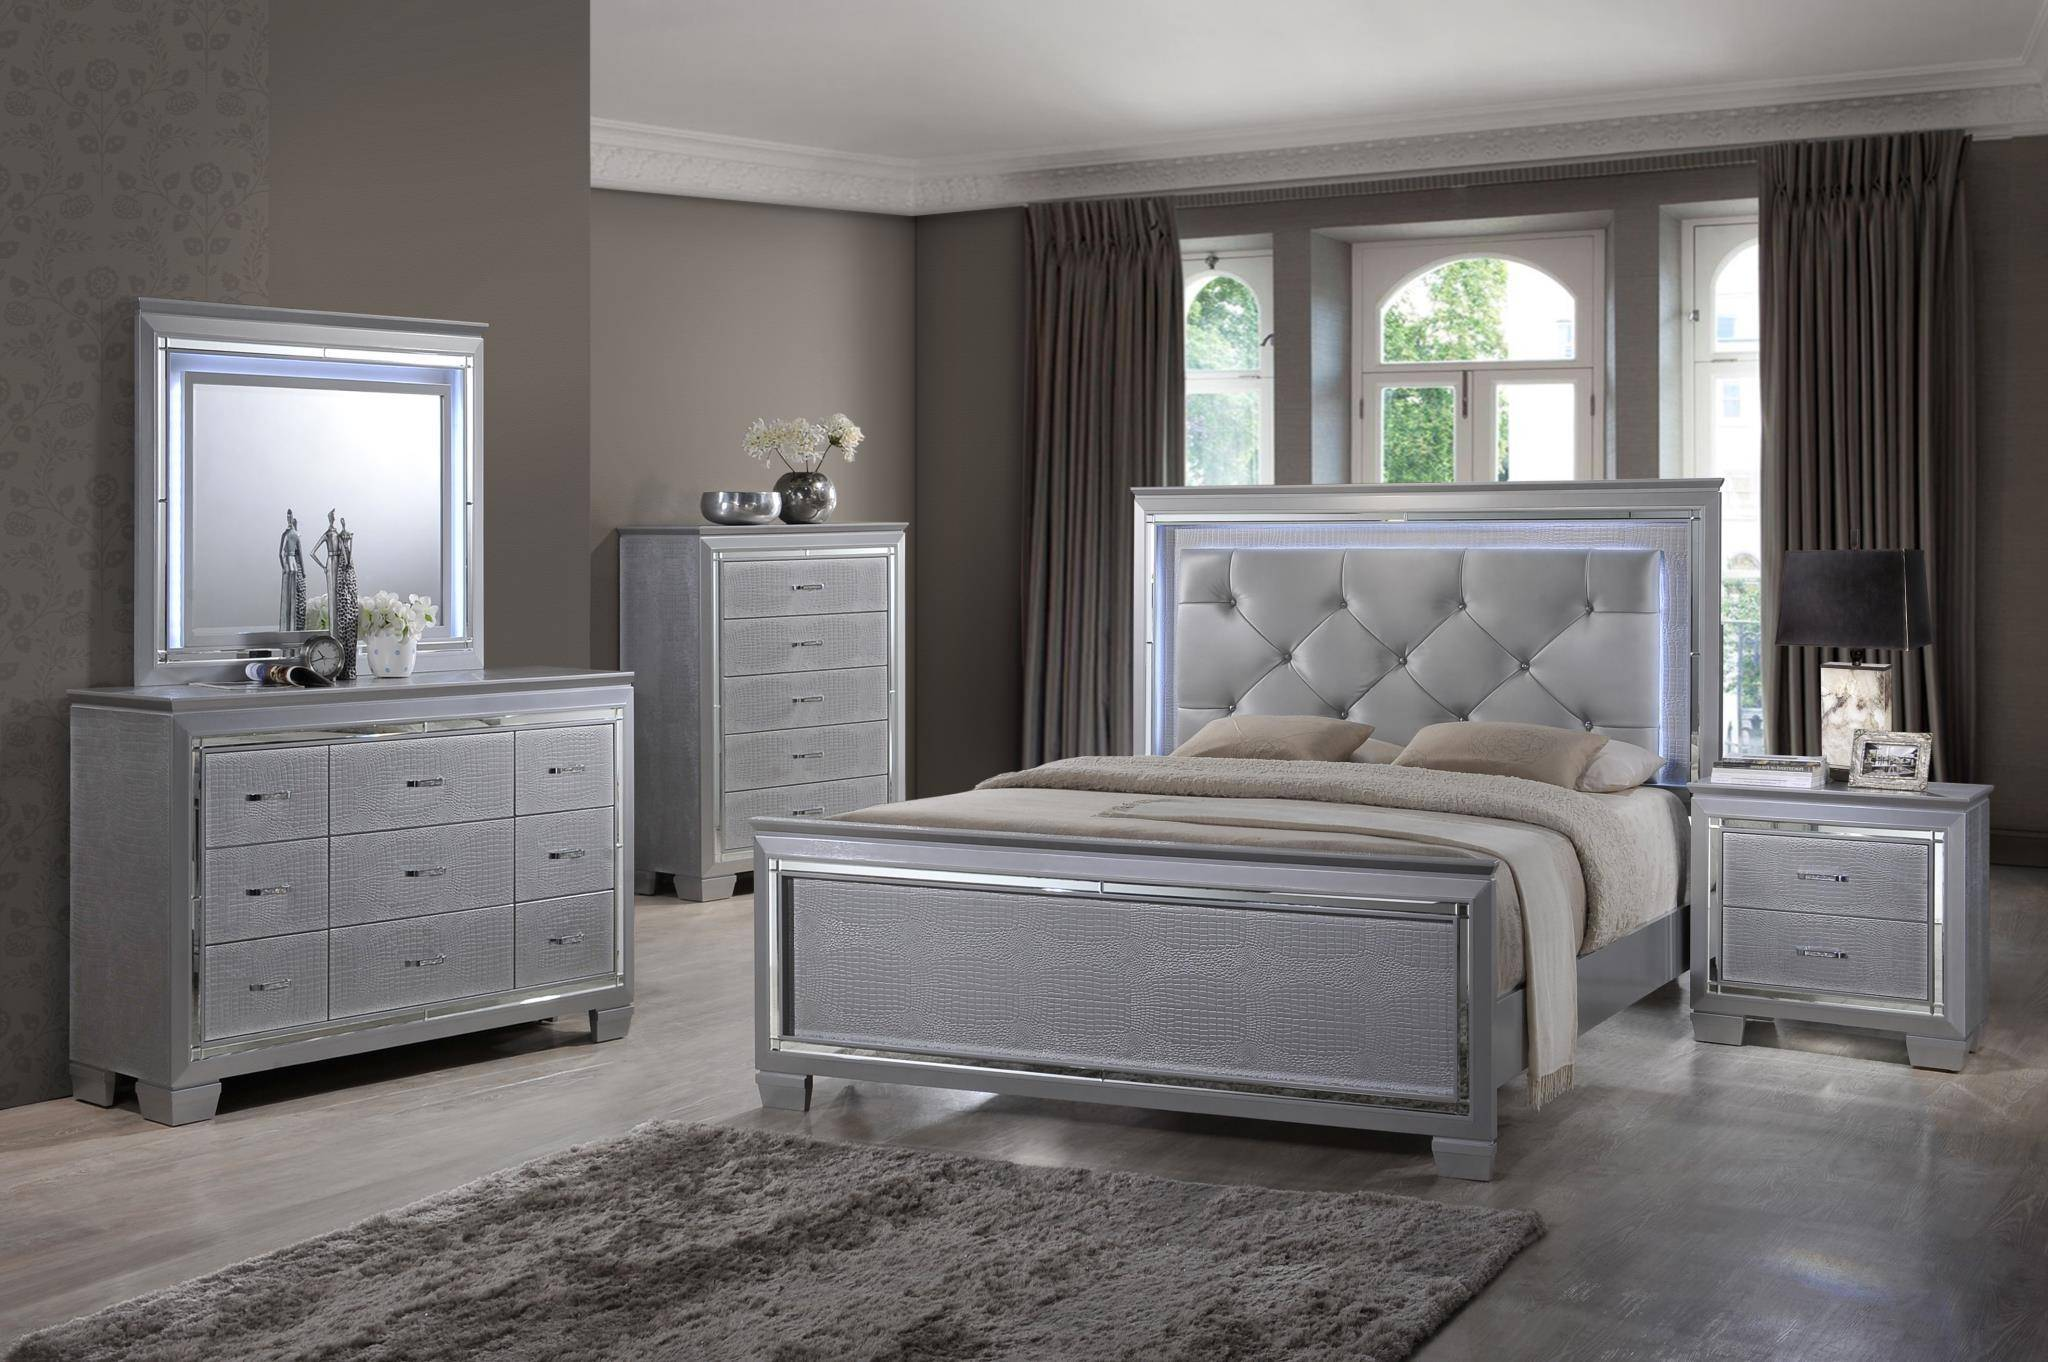 Soflex Tinley Silver Diamond Tufted Queen Bedroom Set 5 Led